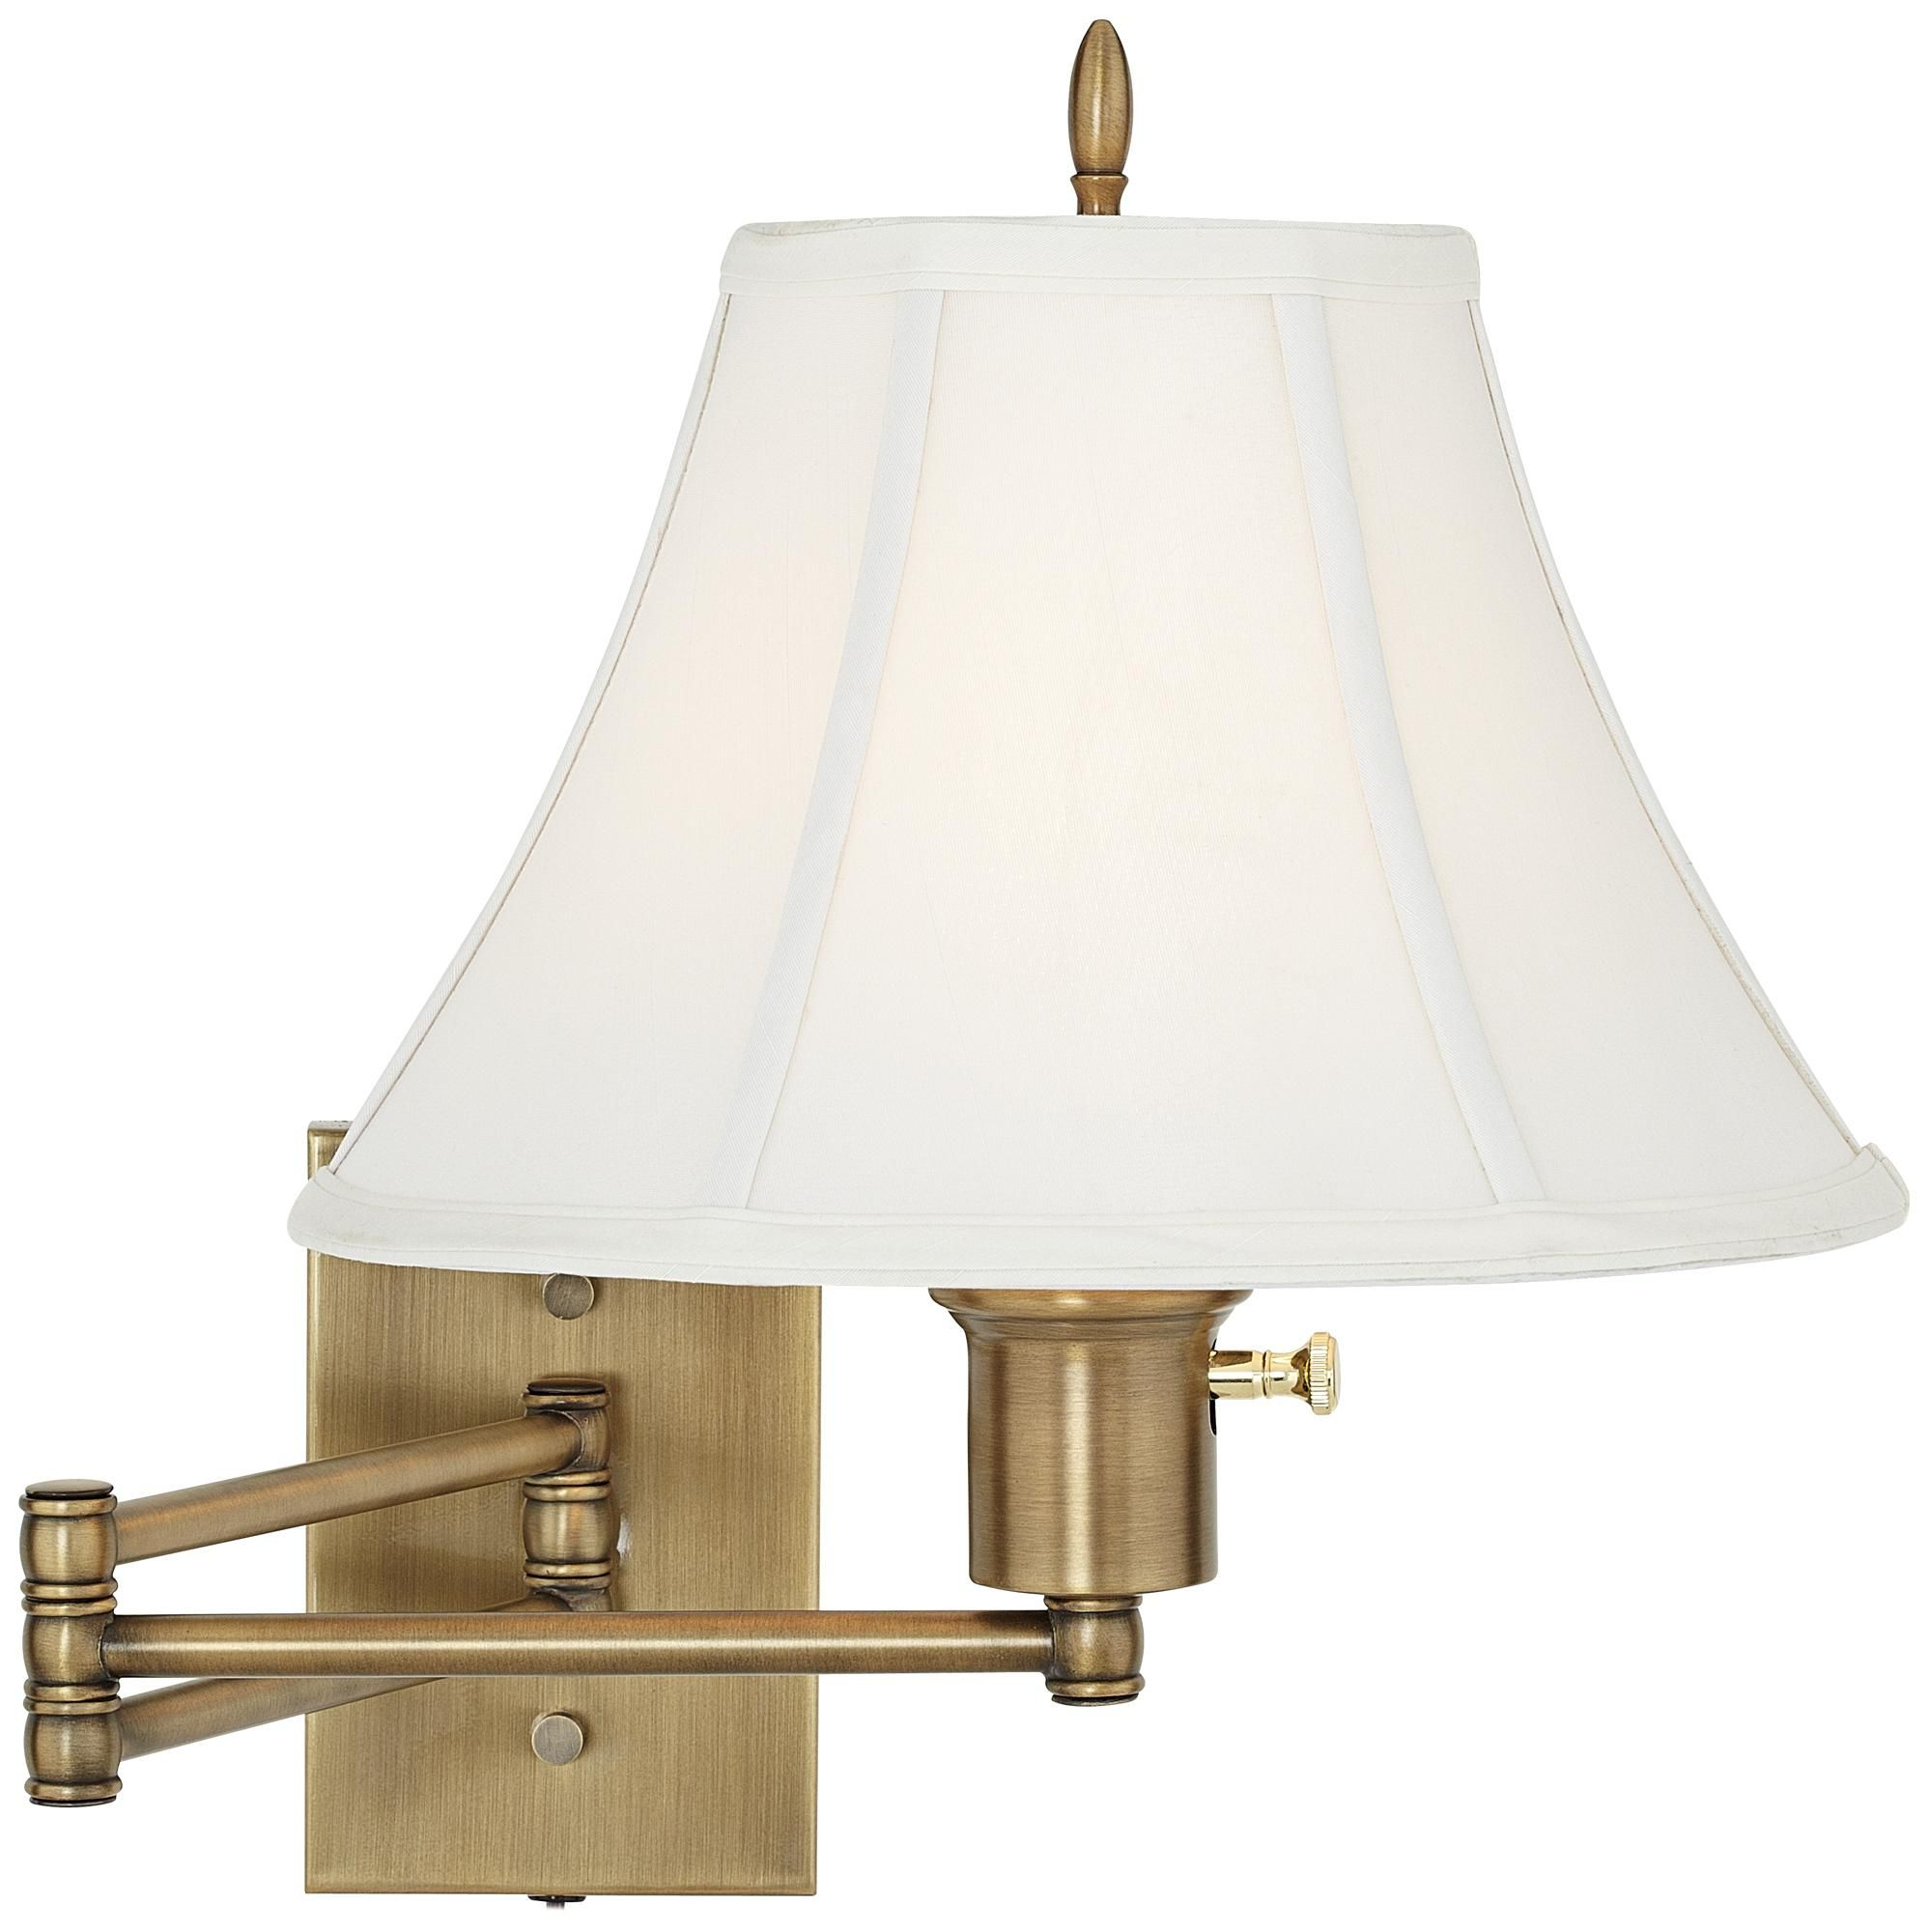 Double arm antique brass swing arm wall lamp on sale